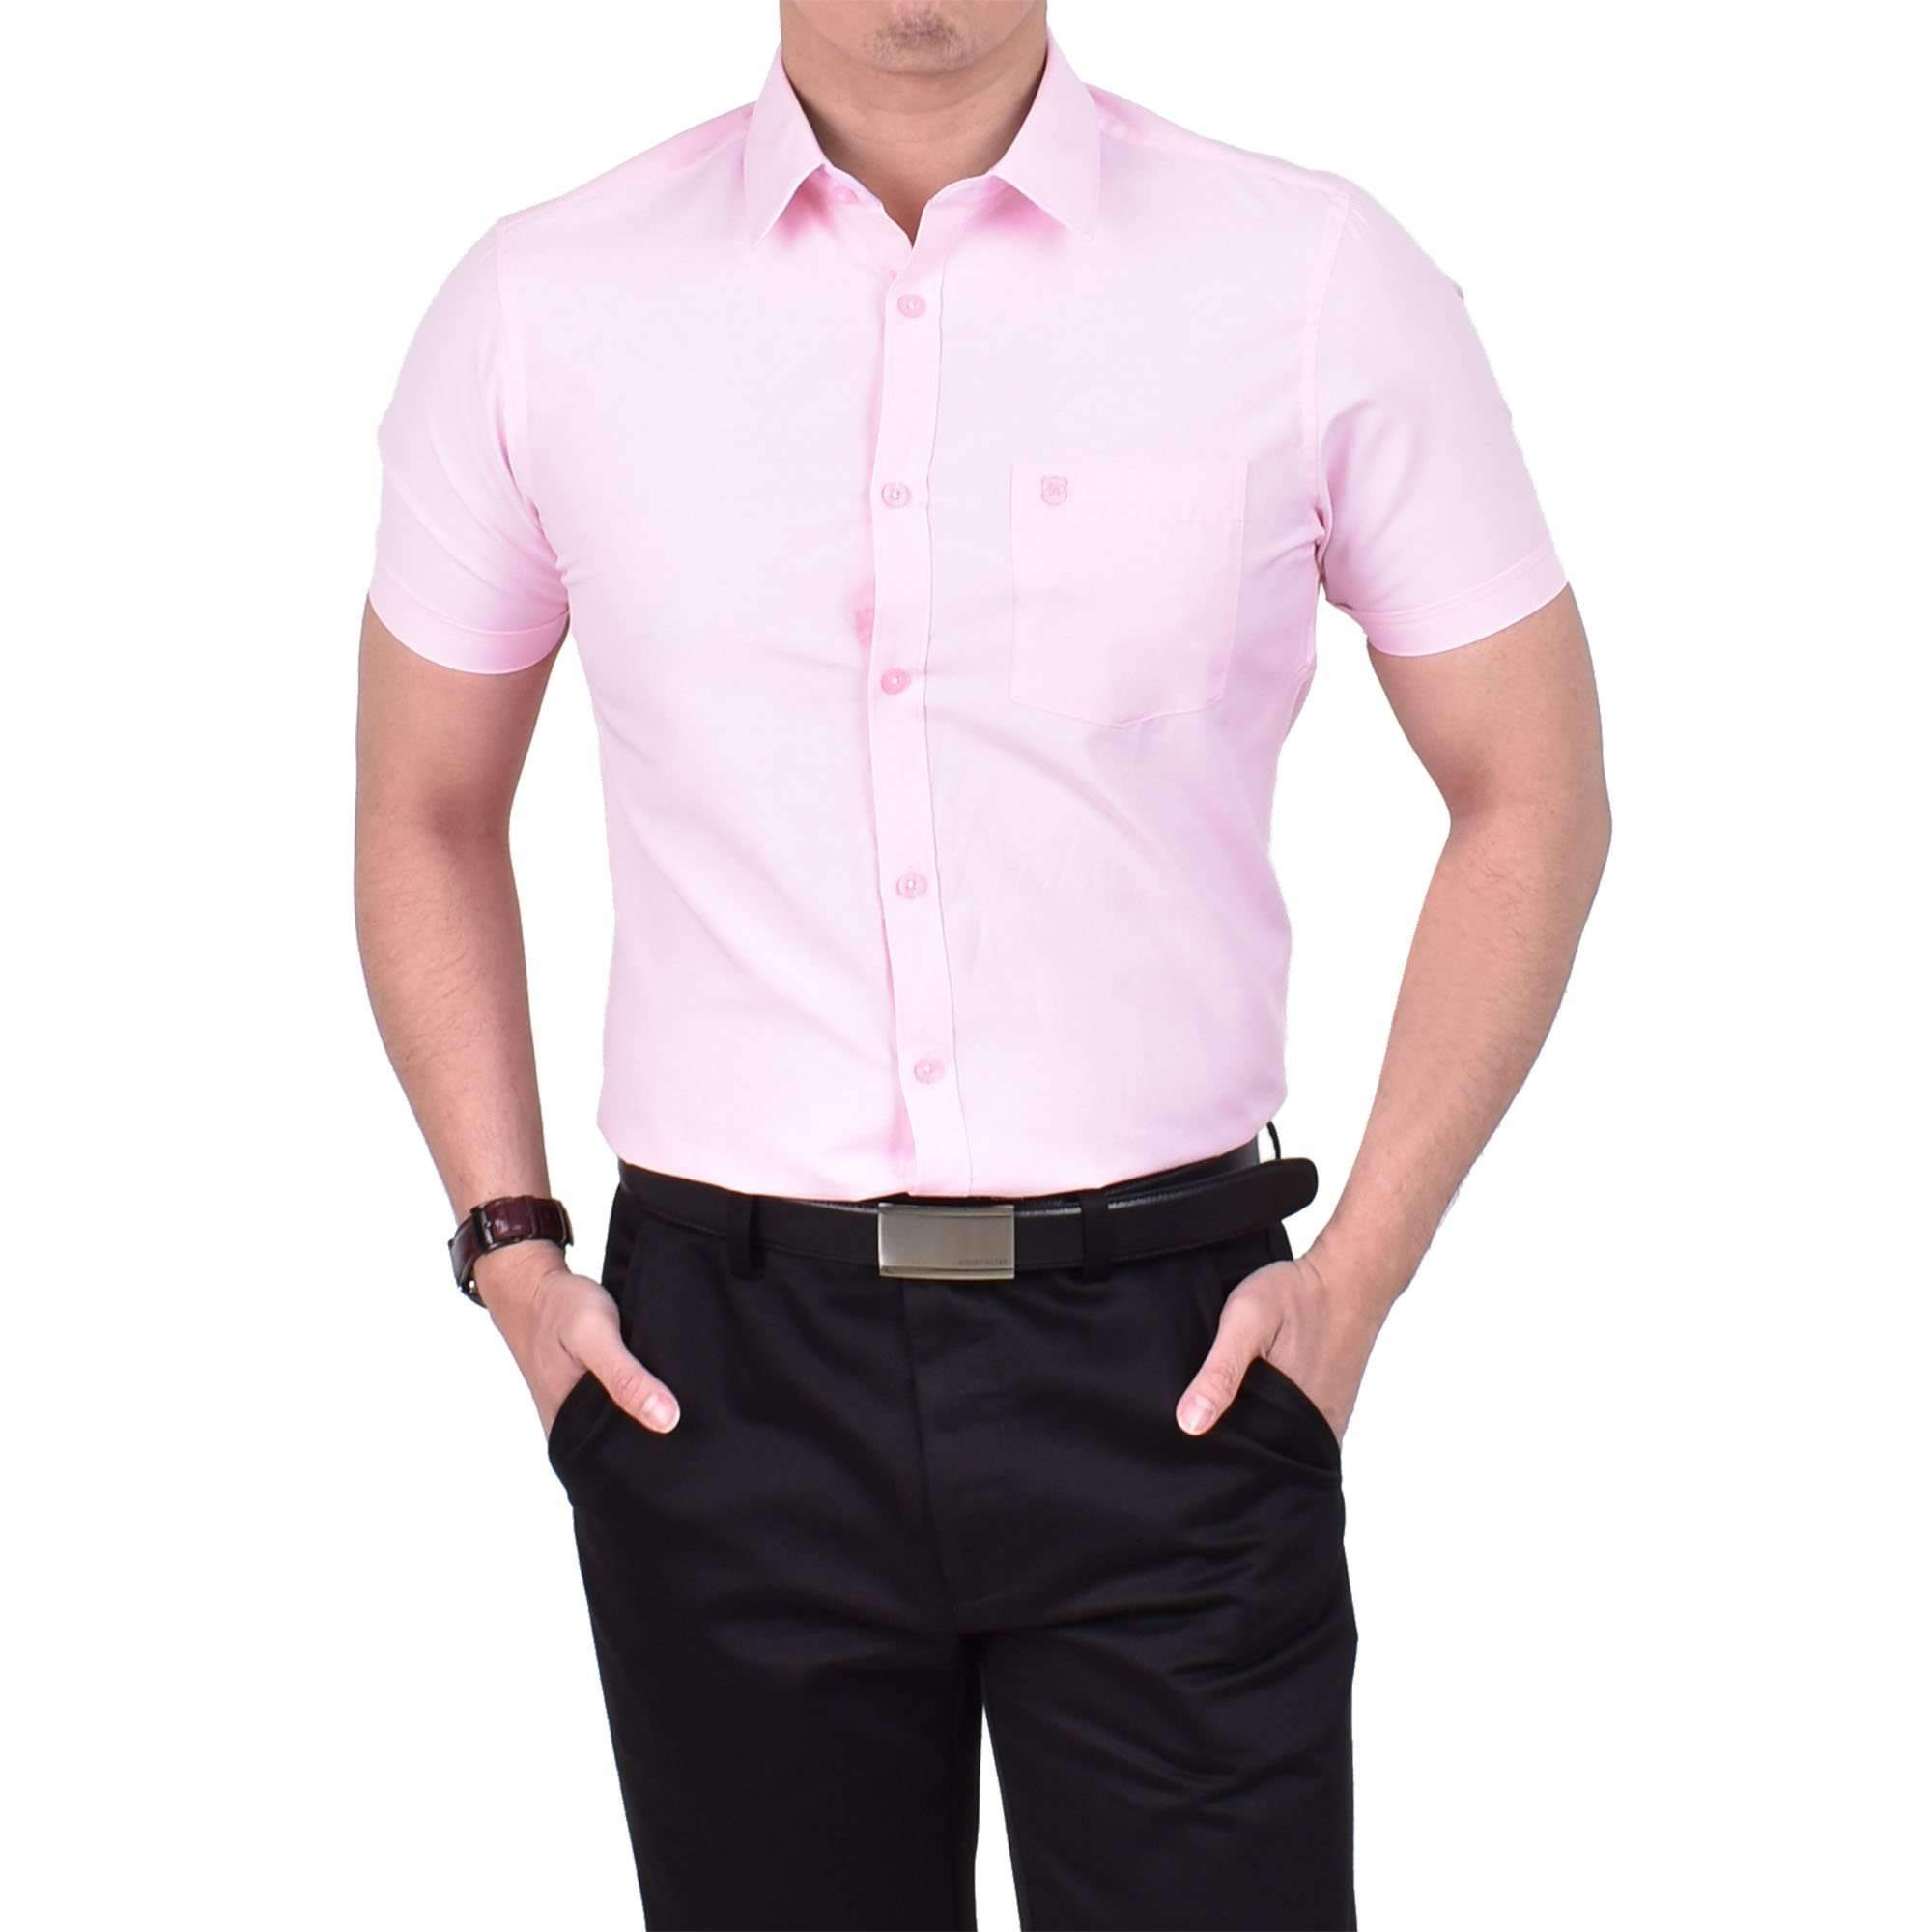 John Master Basic Eseential Short Sleeve Shirt Light Pink 7267001 : Buy John Master online at CMG.MY